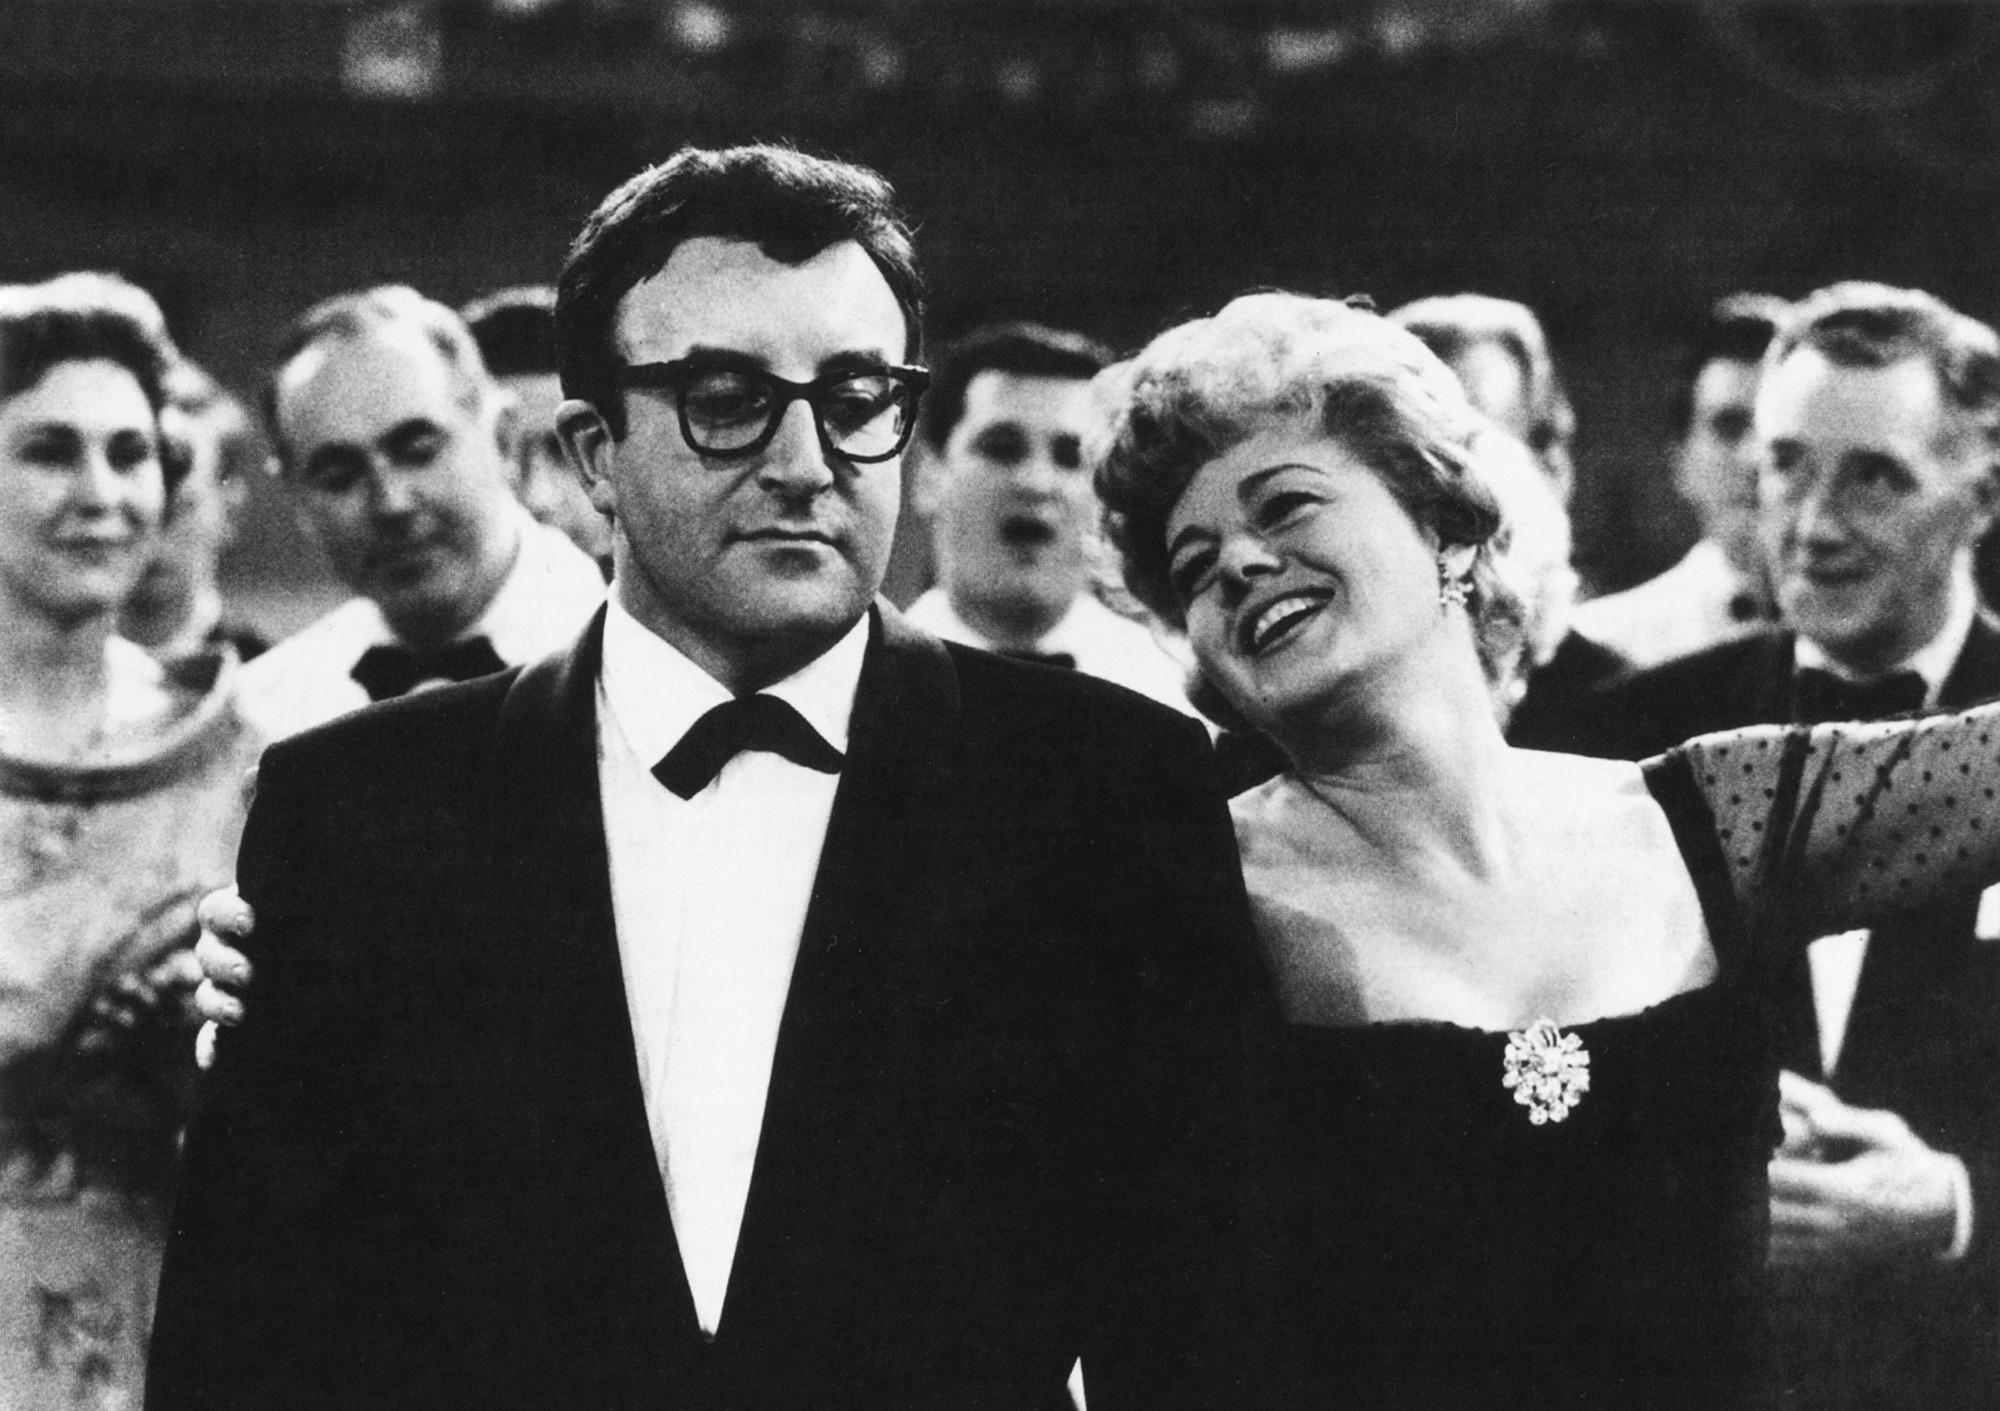 Lolita - Peter Sellers and Shelley Winters